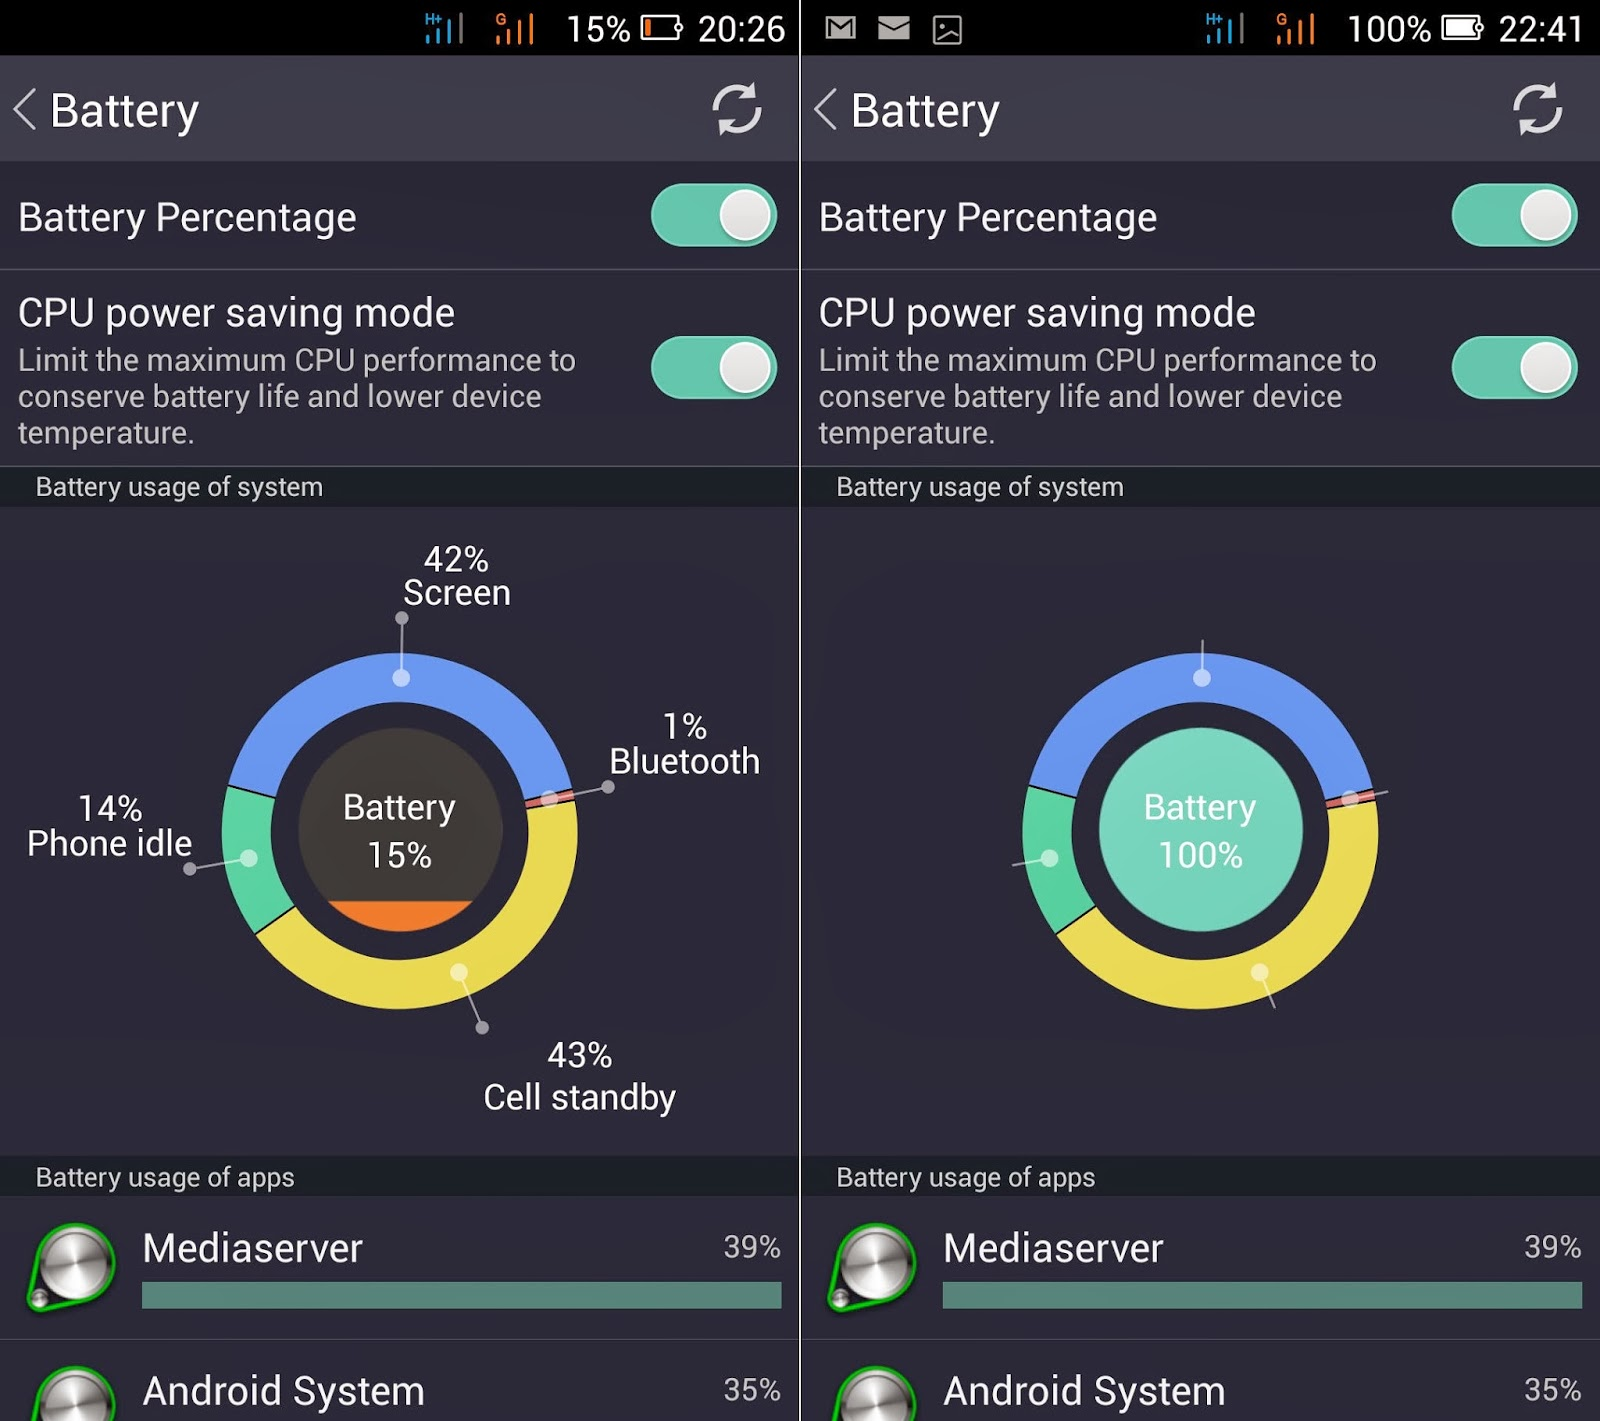 Cherry Mobile Cosmos Z2 Review Battery Stats - Charging Time